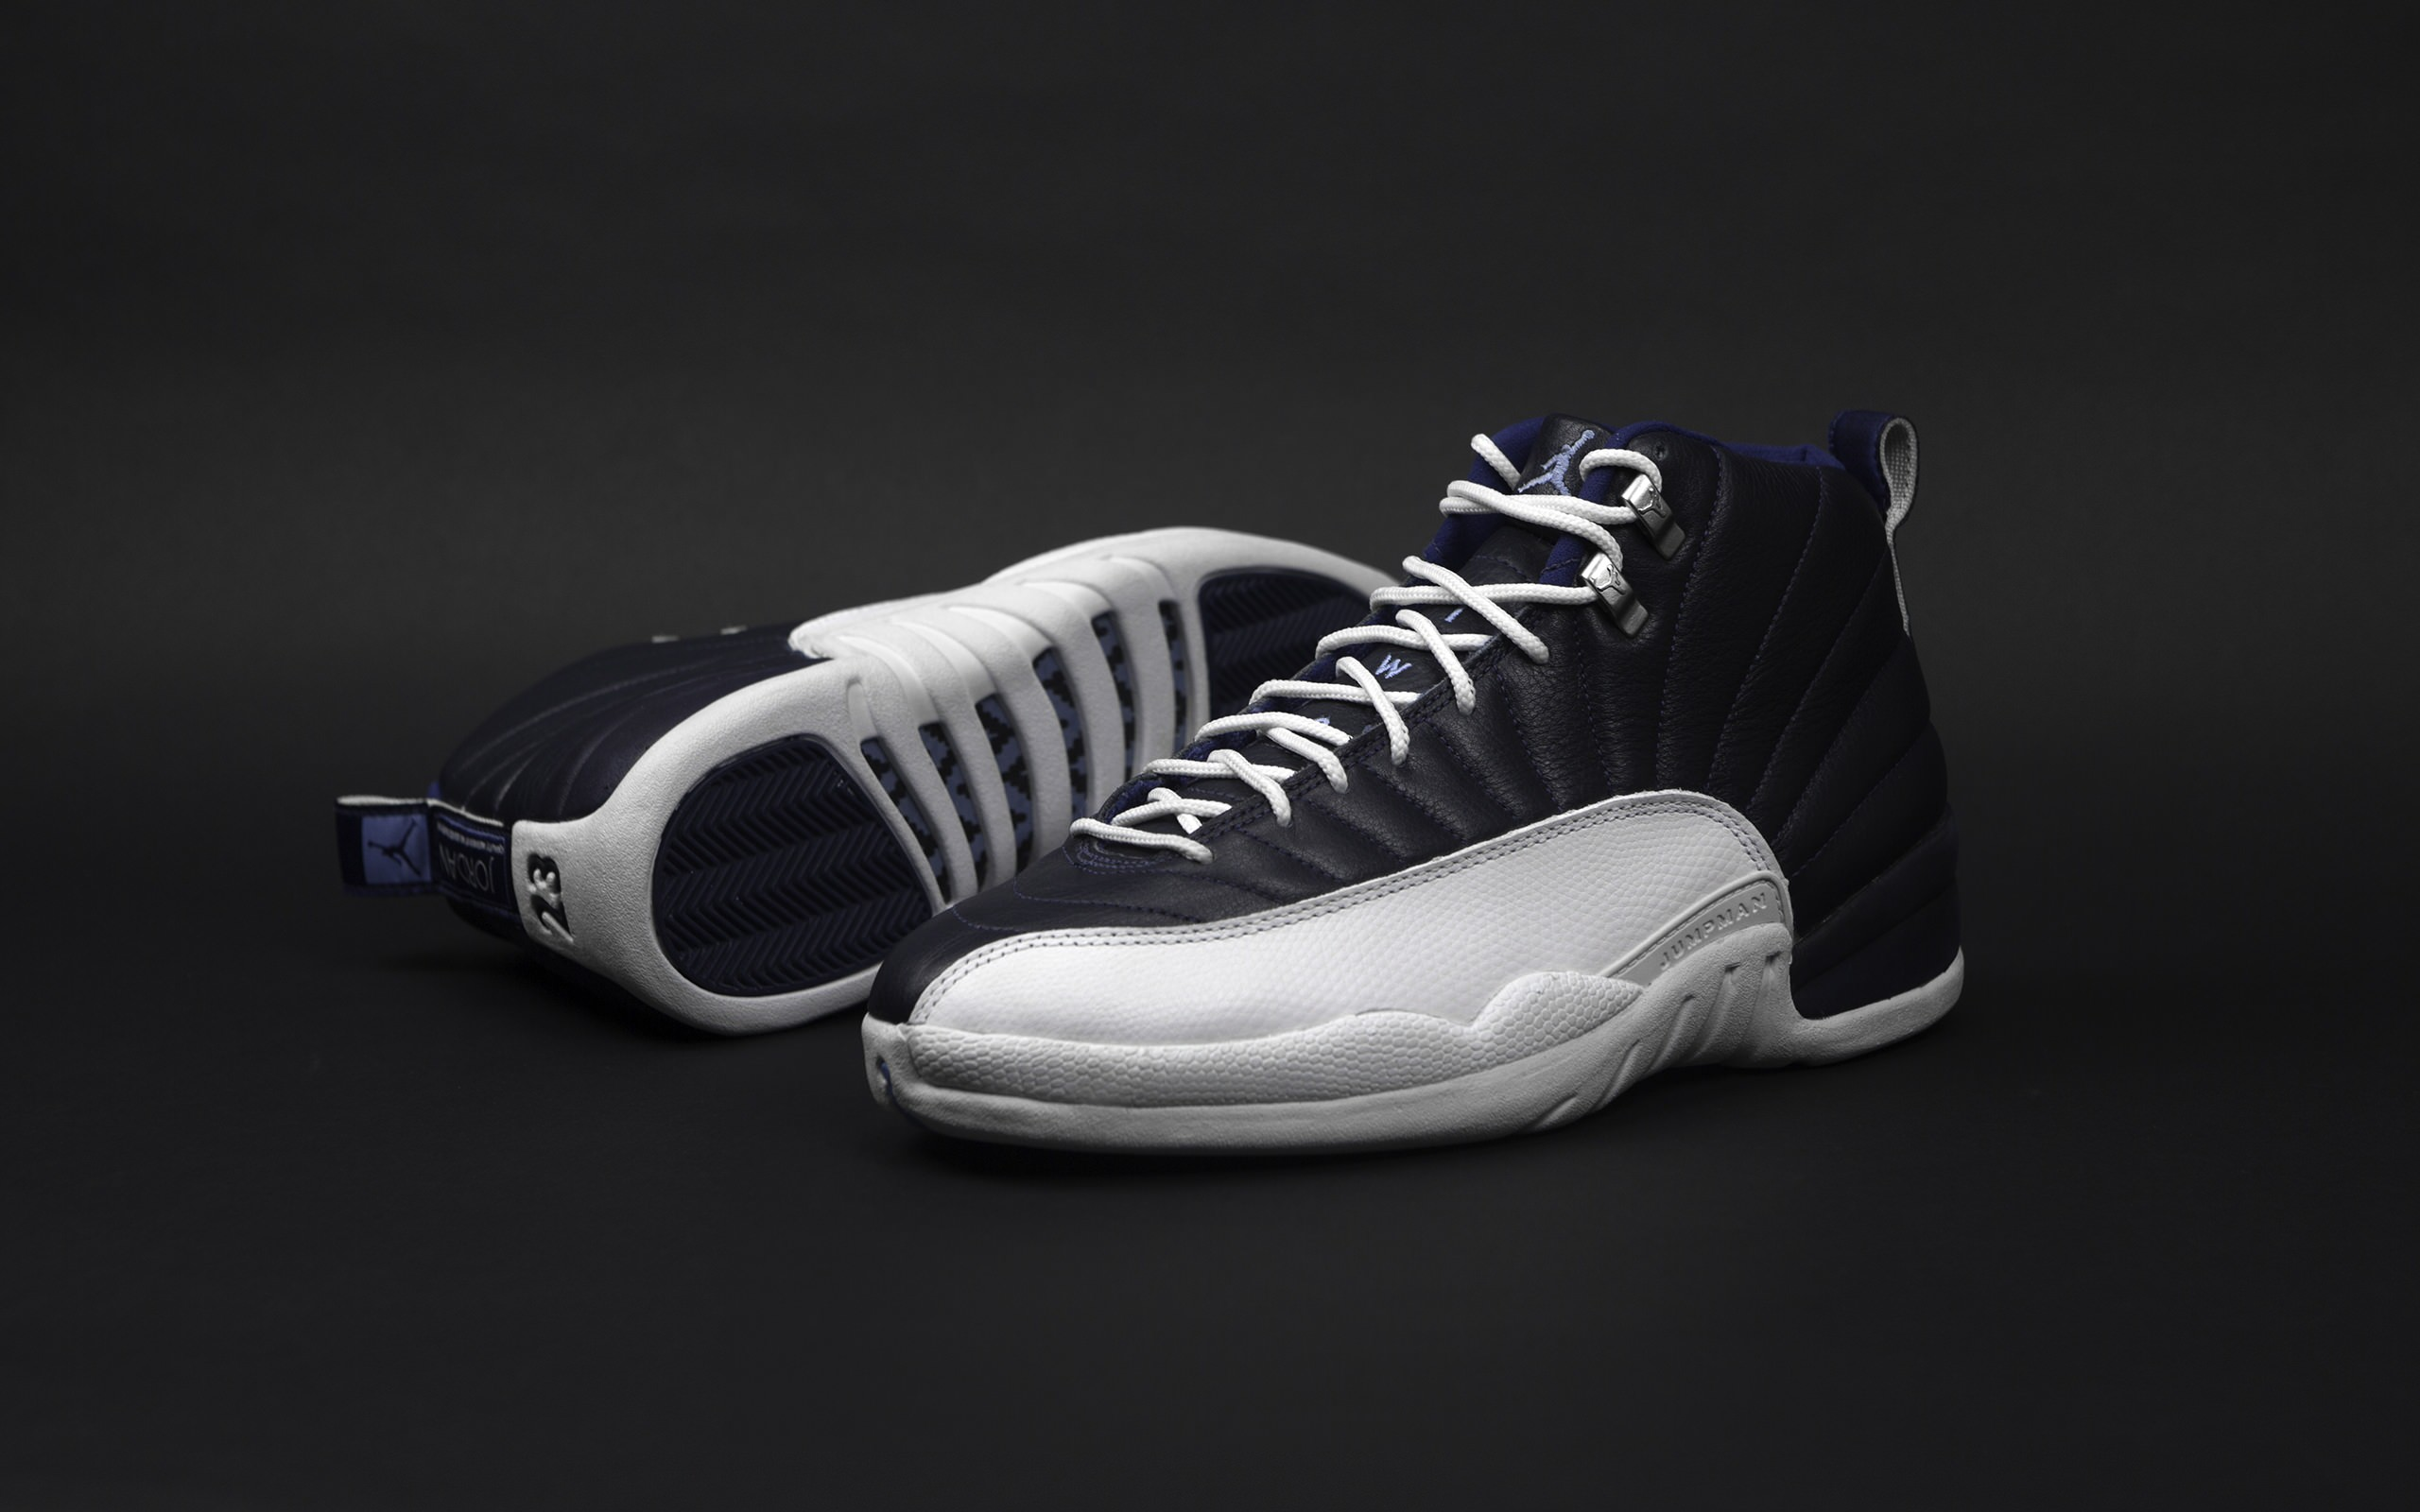 Jordan Shoes Wallpapers 30678